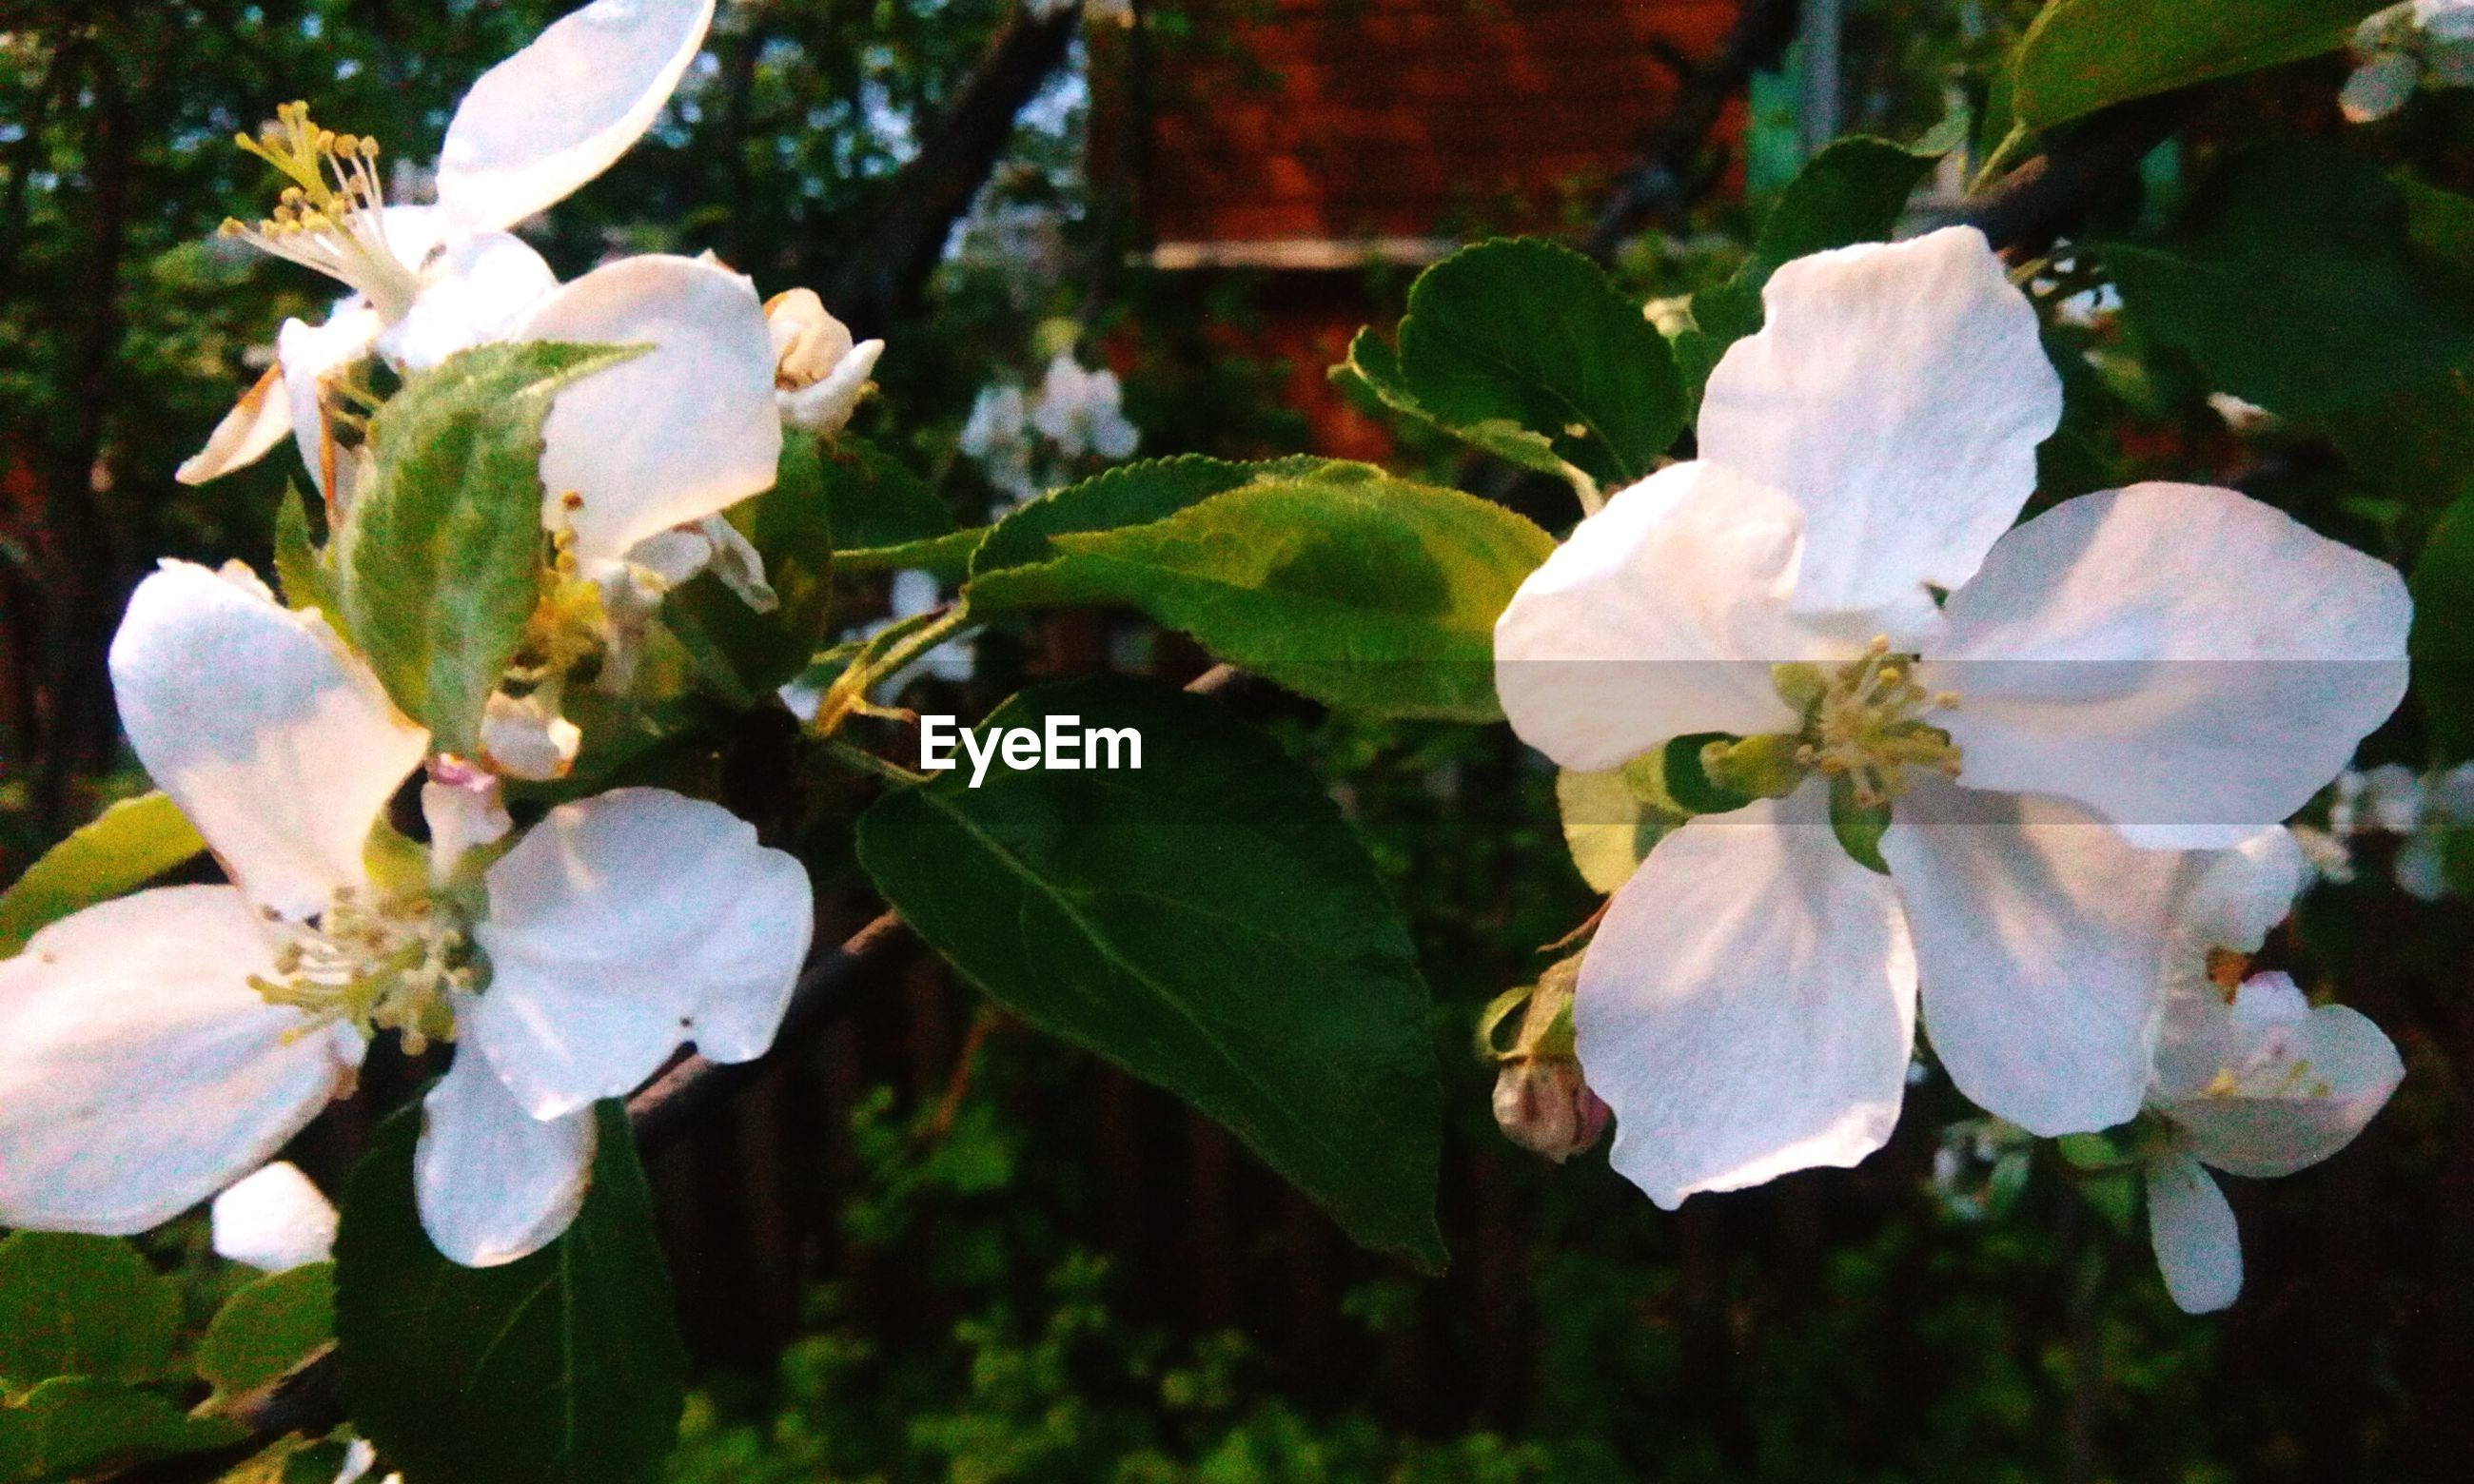 flowering plant, flower, plant, beauty in nature, fragility, vulnerability, growth, freshness, petal, inflorescence, flower head, close-up, white color, plant part, blossom, leaf, nature, no people, focus on foreground, pollen, outdoors, springtime, spring